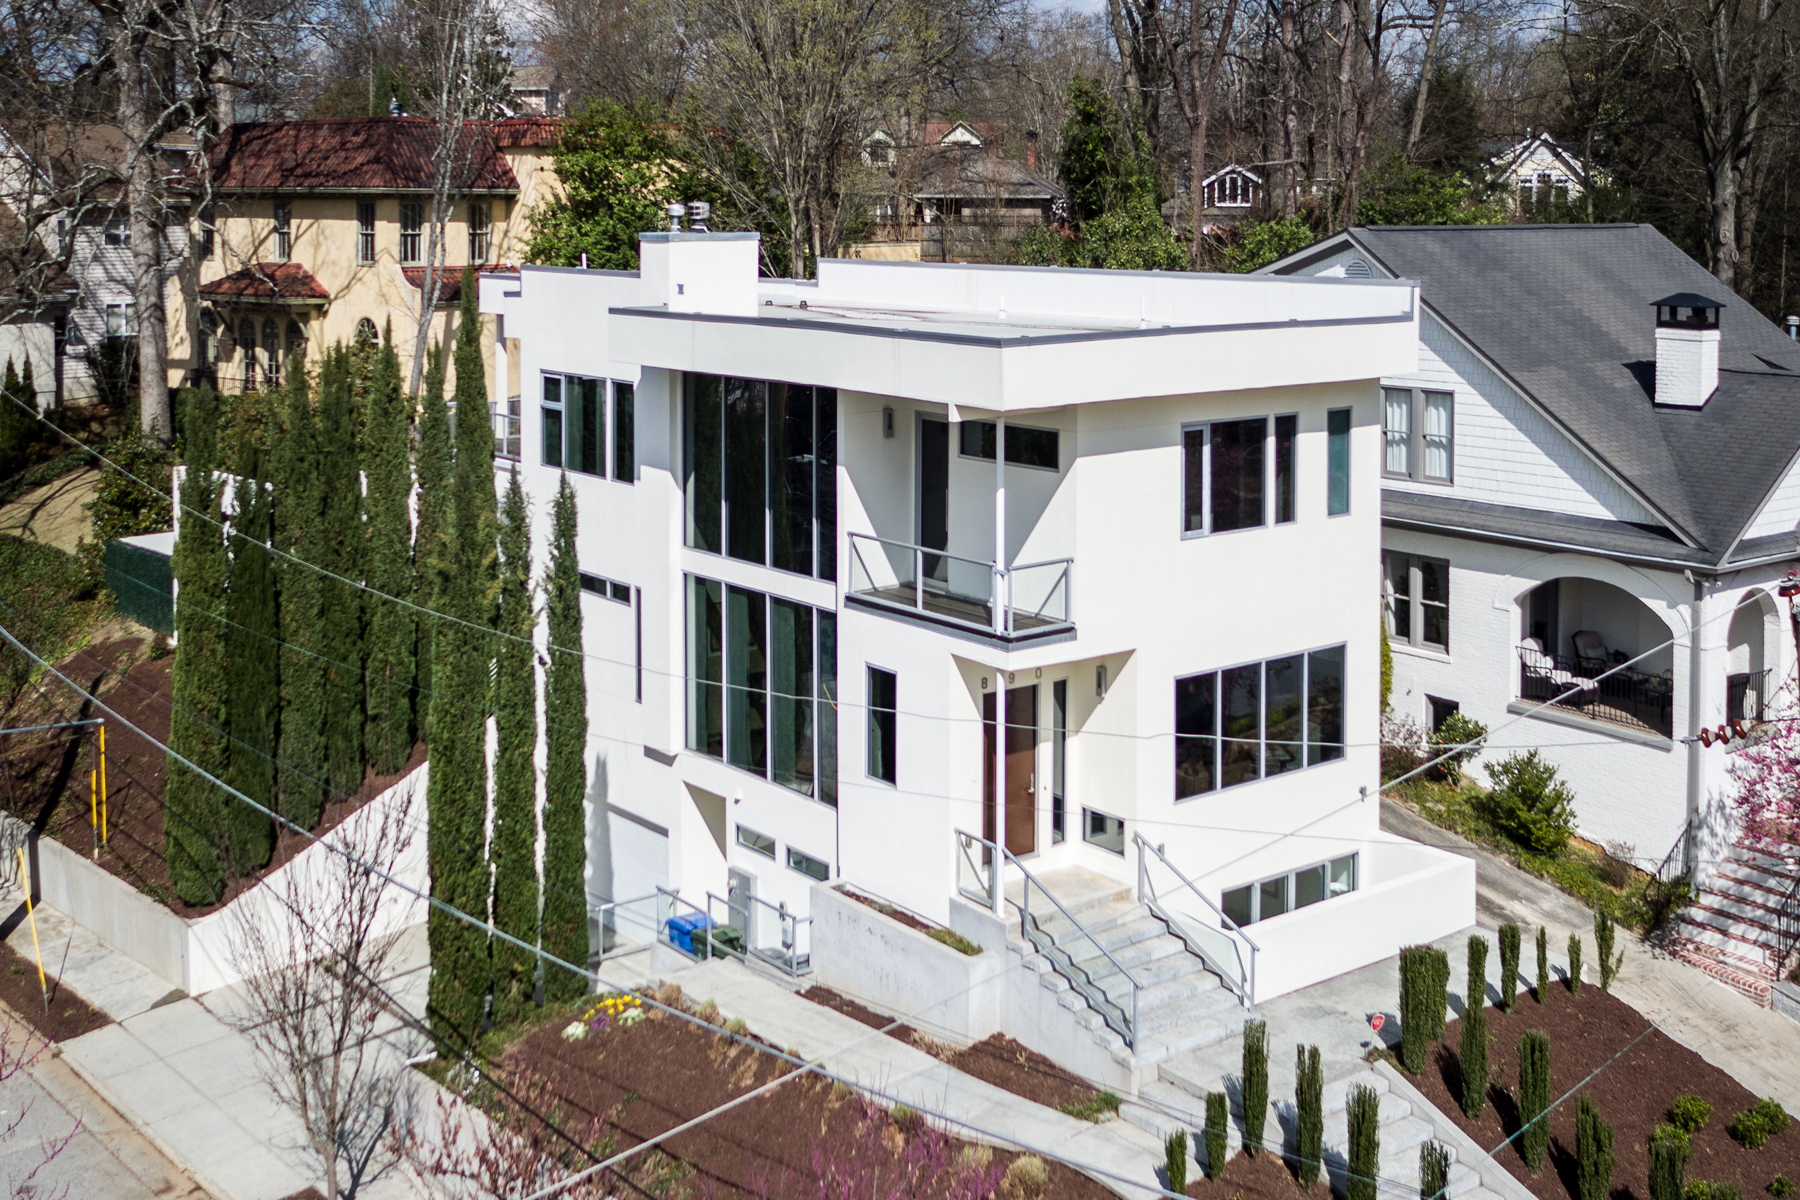 Single Family Home for Sale at Contemporary Morningside Home 890 Courtenay Drive NE Atlanta, Georgia 30306 United States